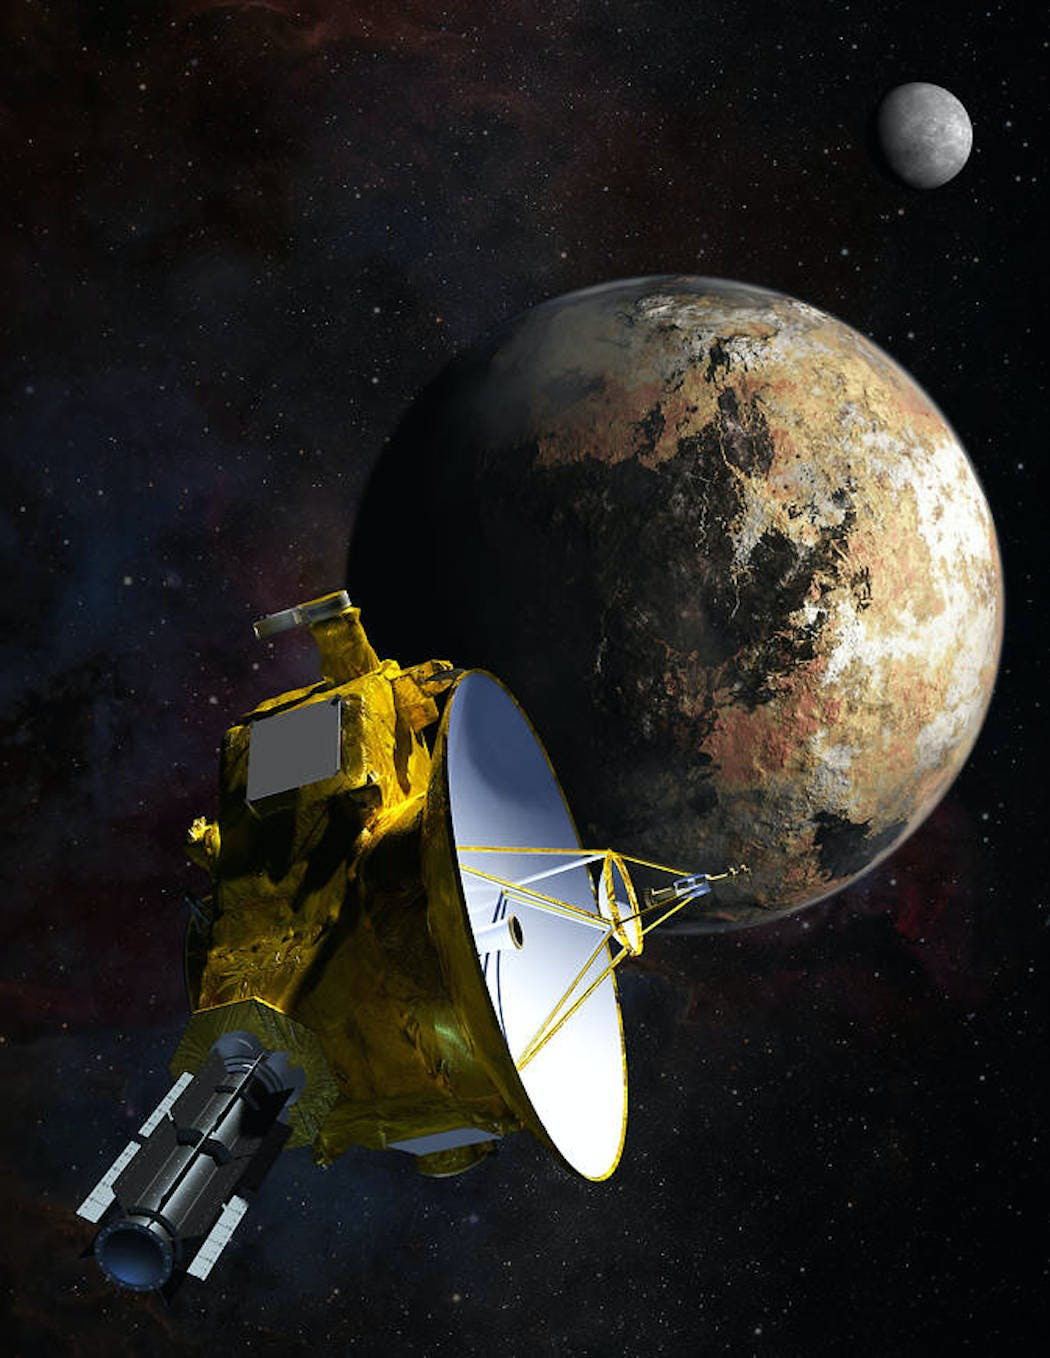 NASA caption: Artist's concept of NASA's New Horizons spacecraft as it passes Pluto and Pluto's largest moon, Charon, in July 2015.